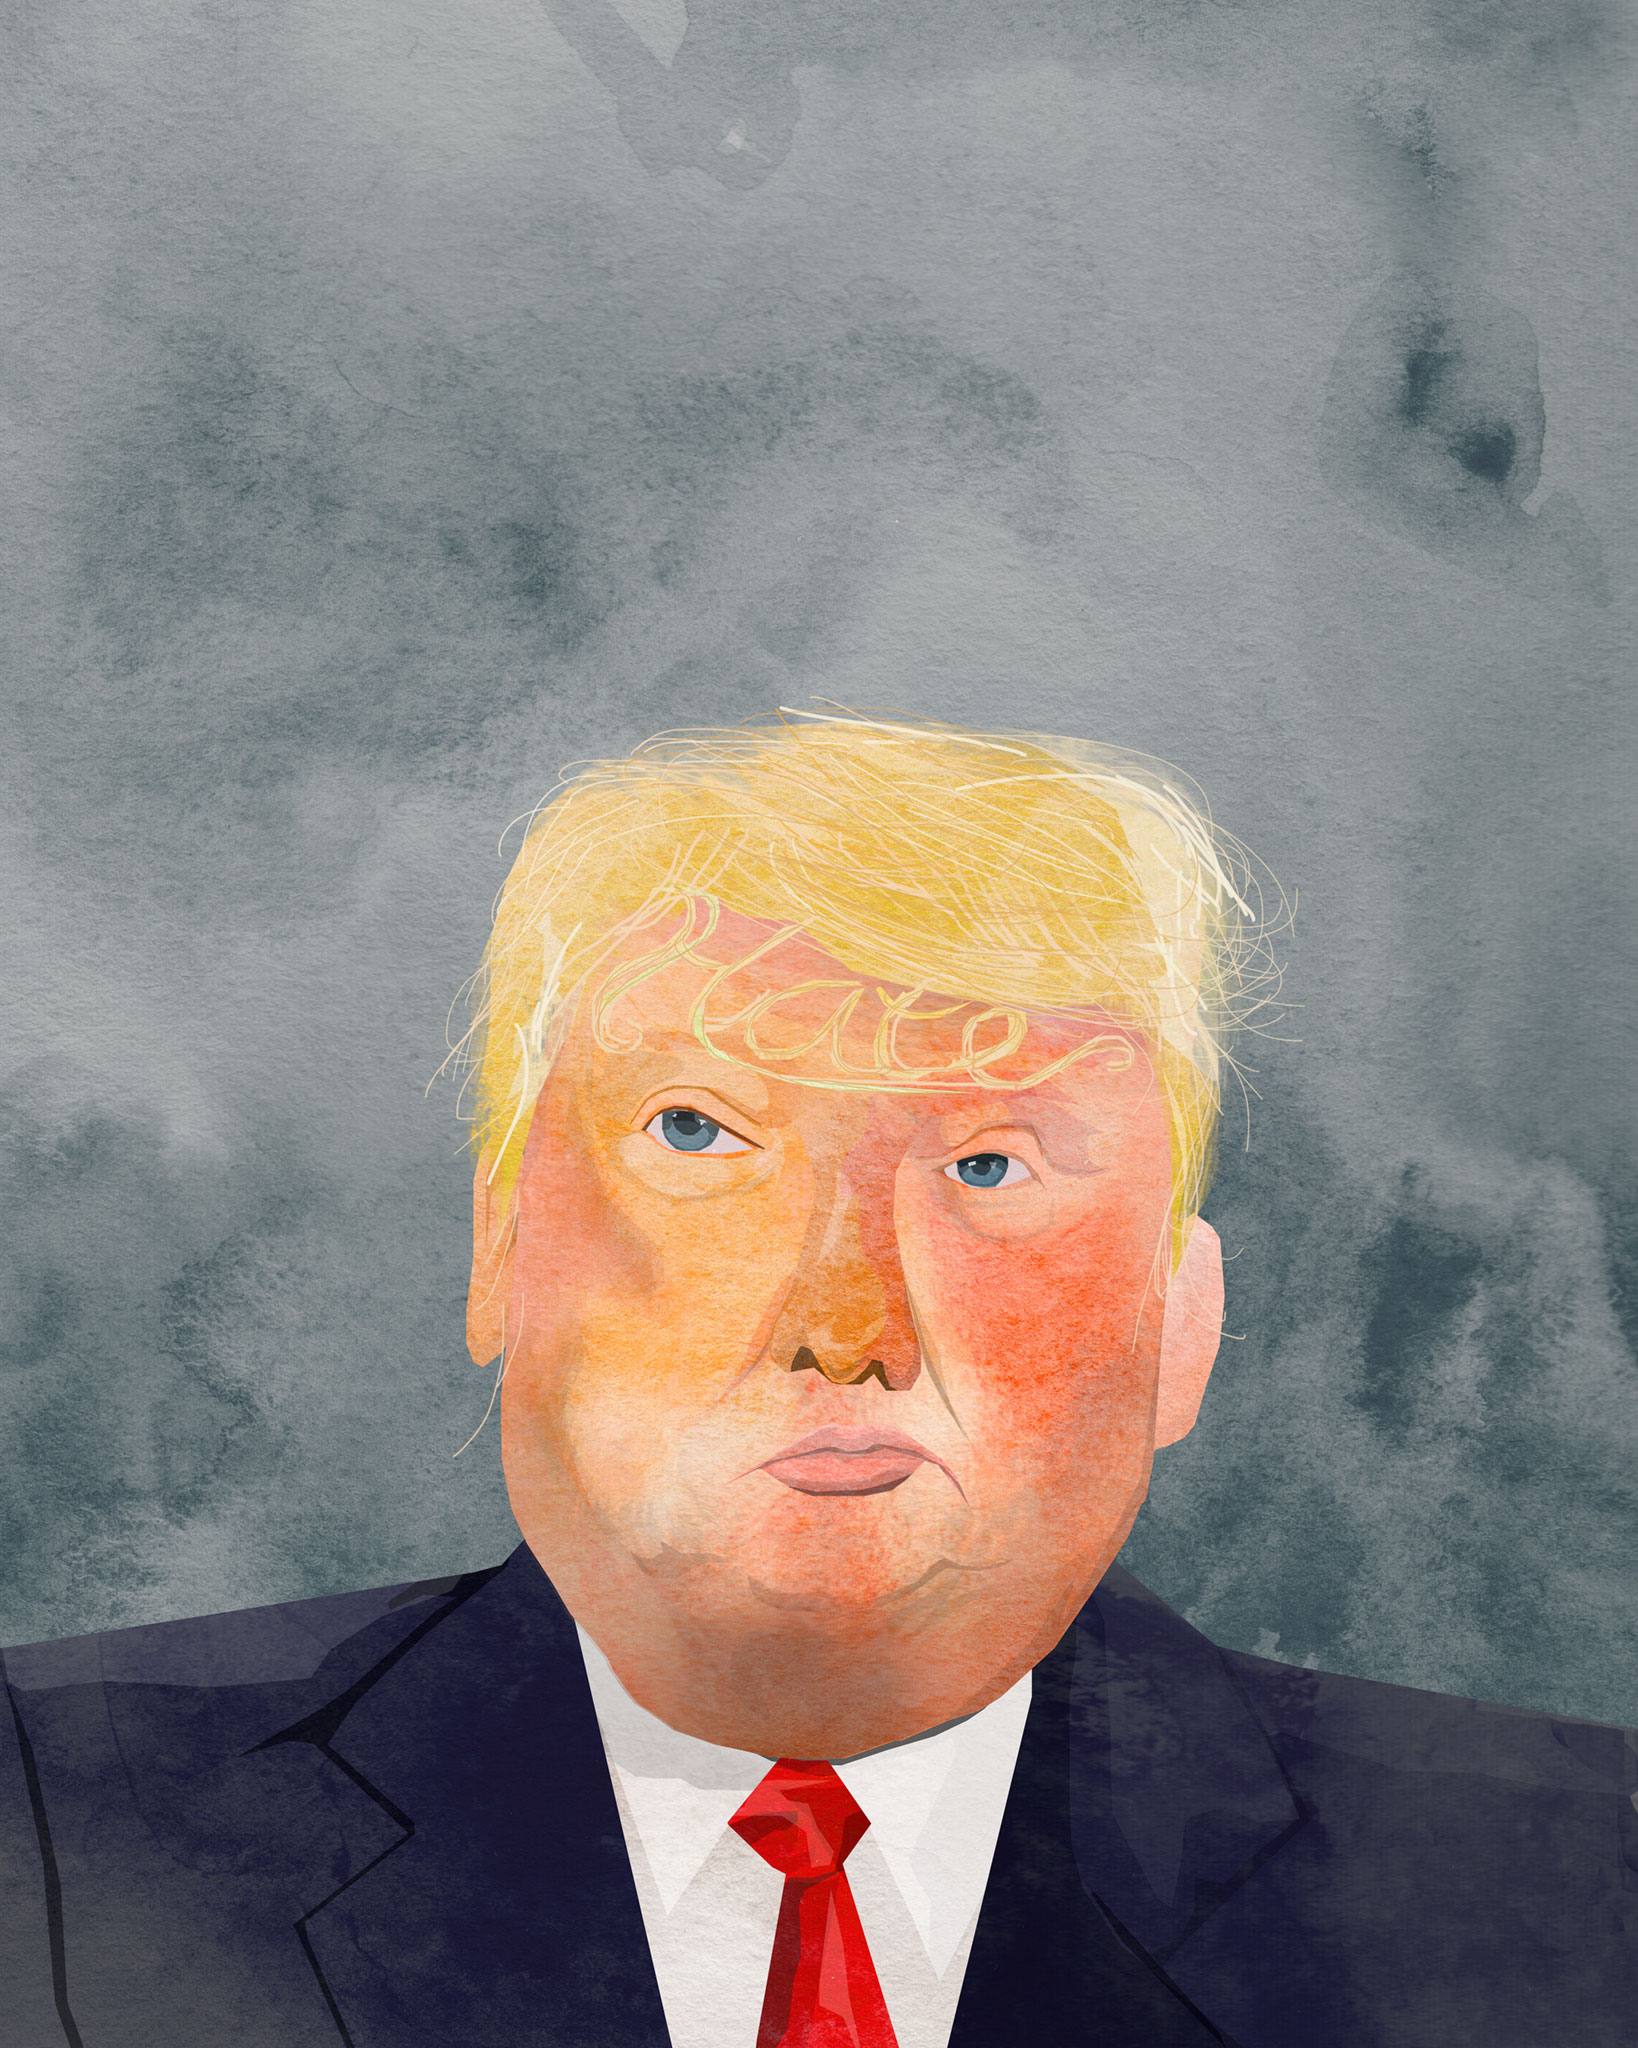 tram nguyen donald trump hater illustration